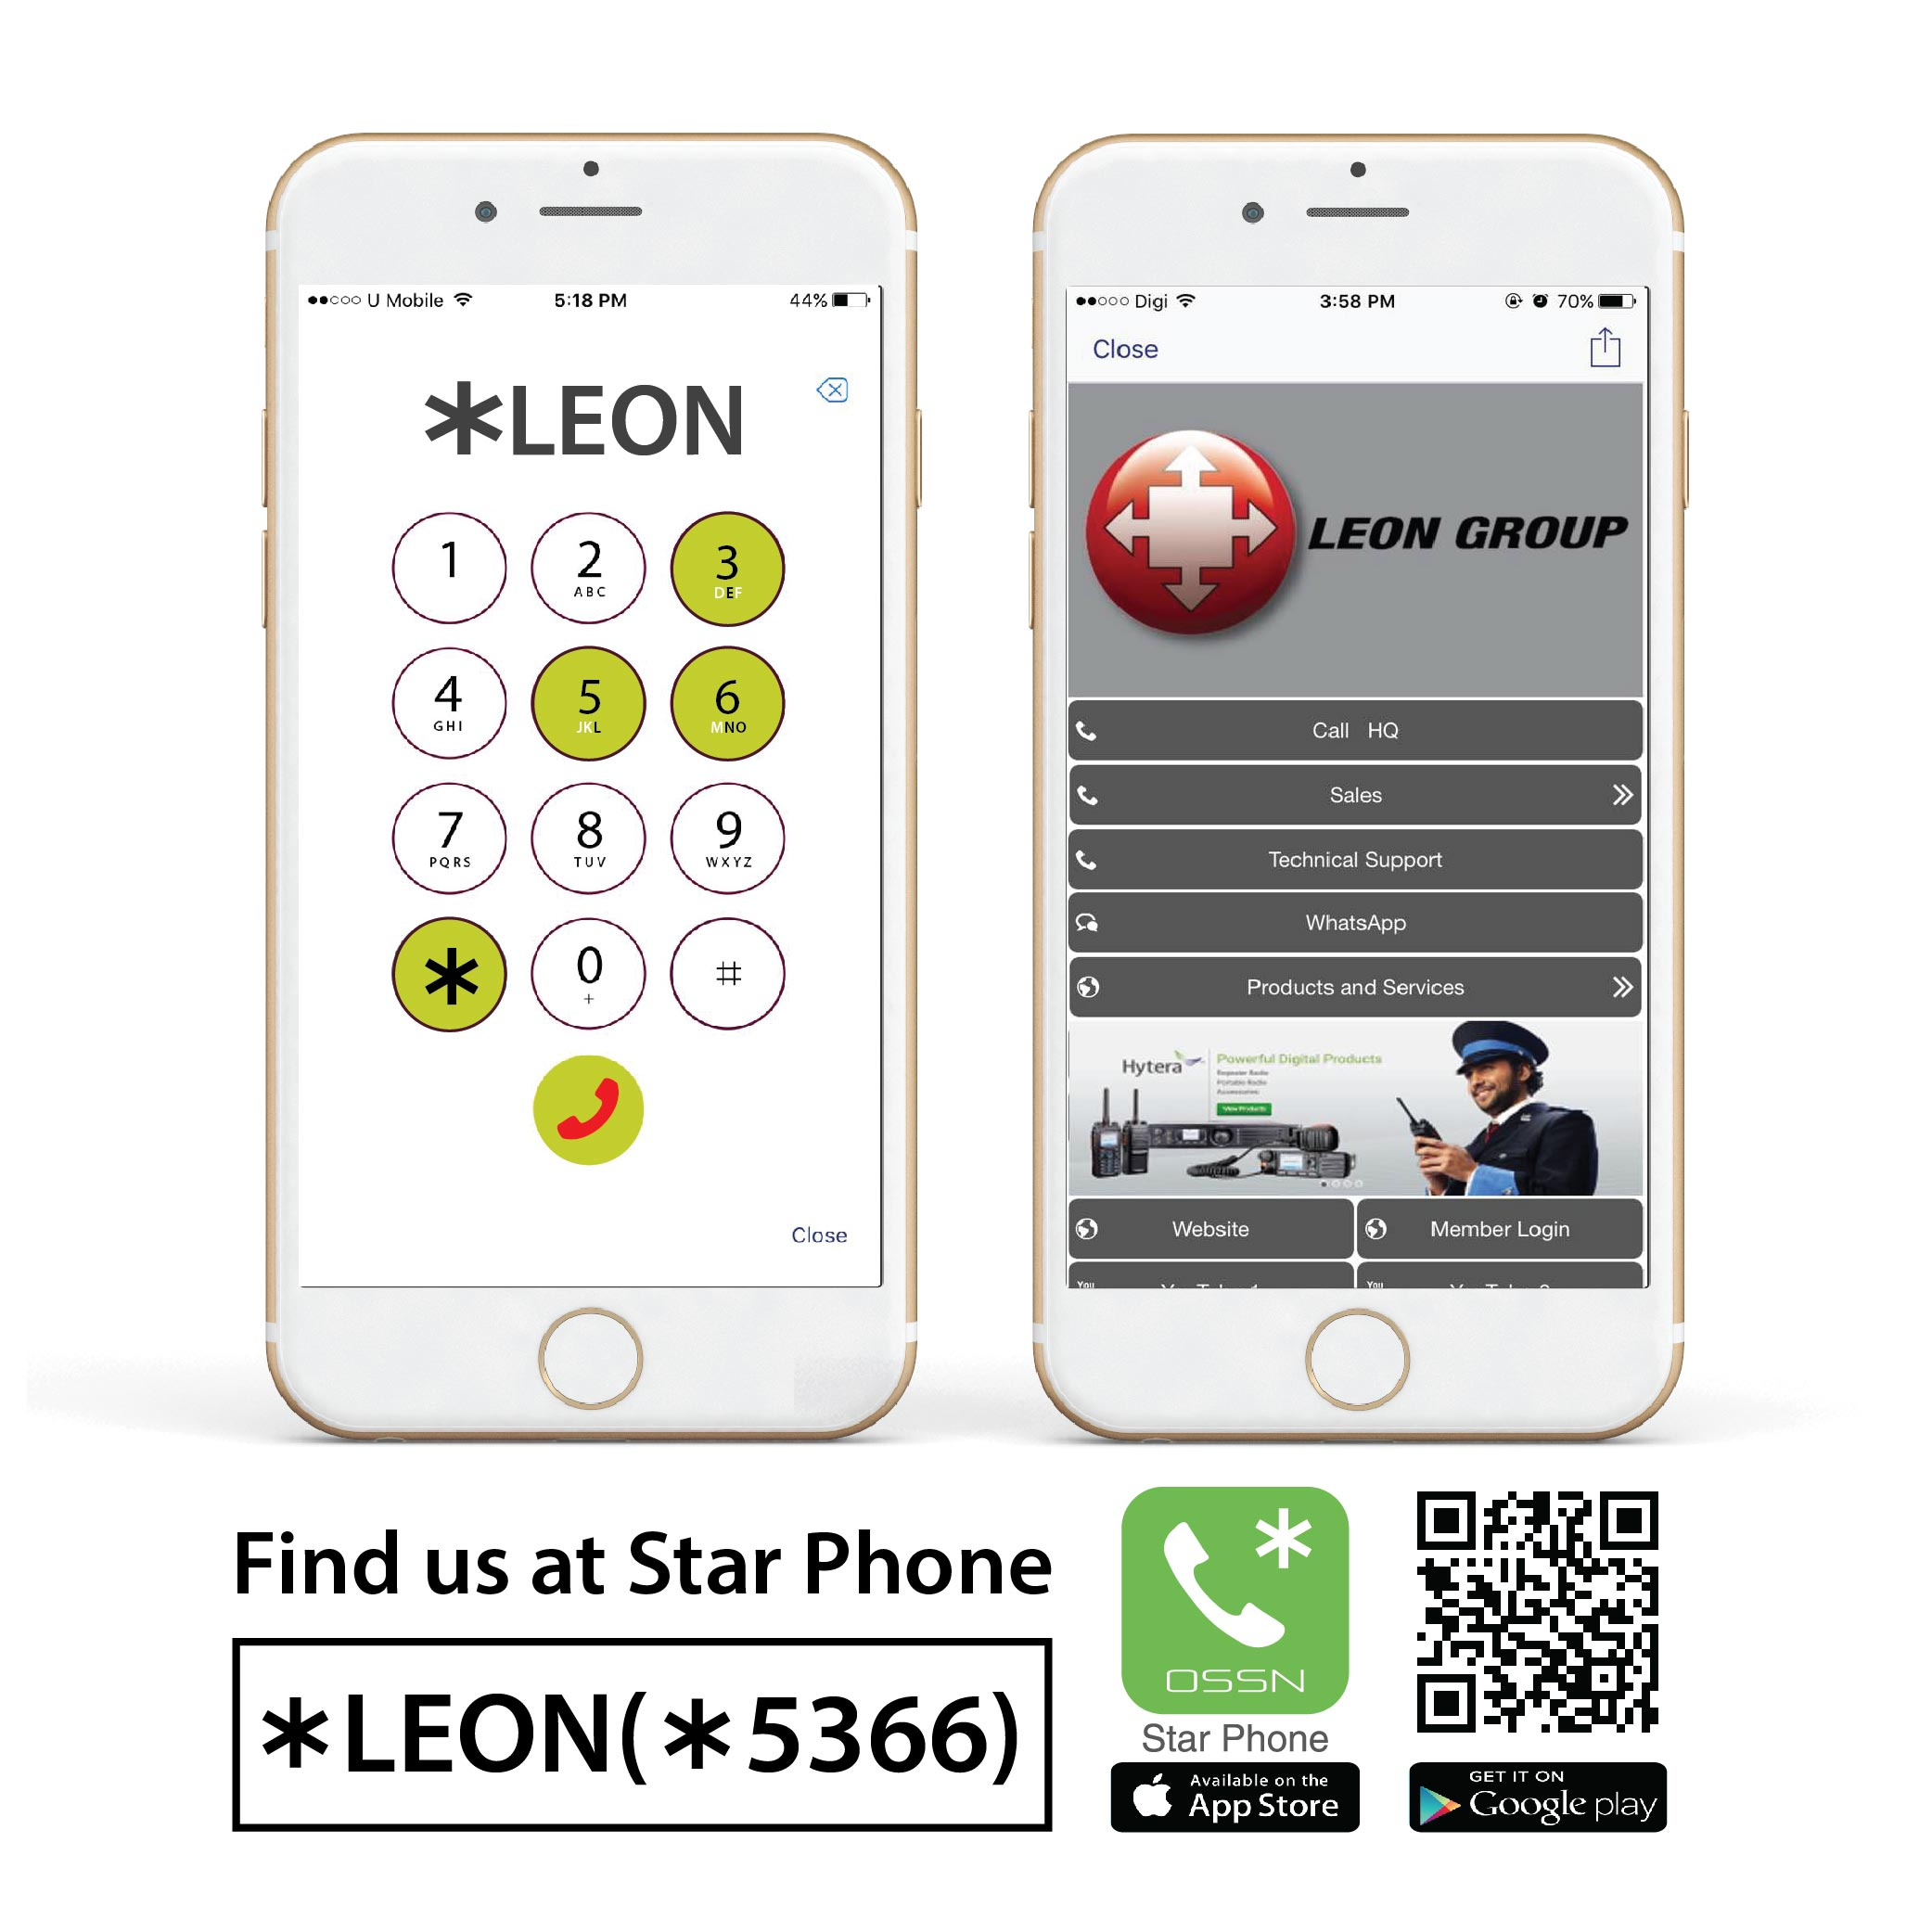 leon-website-01 Home